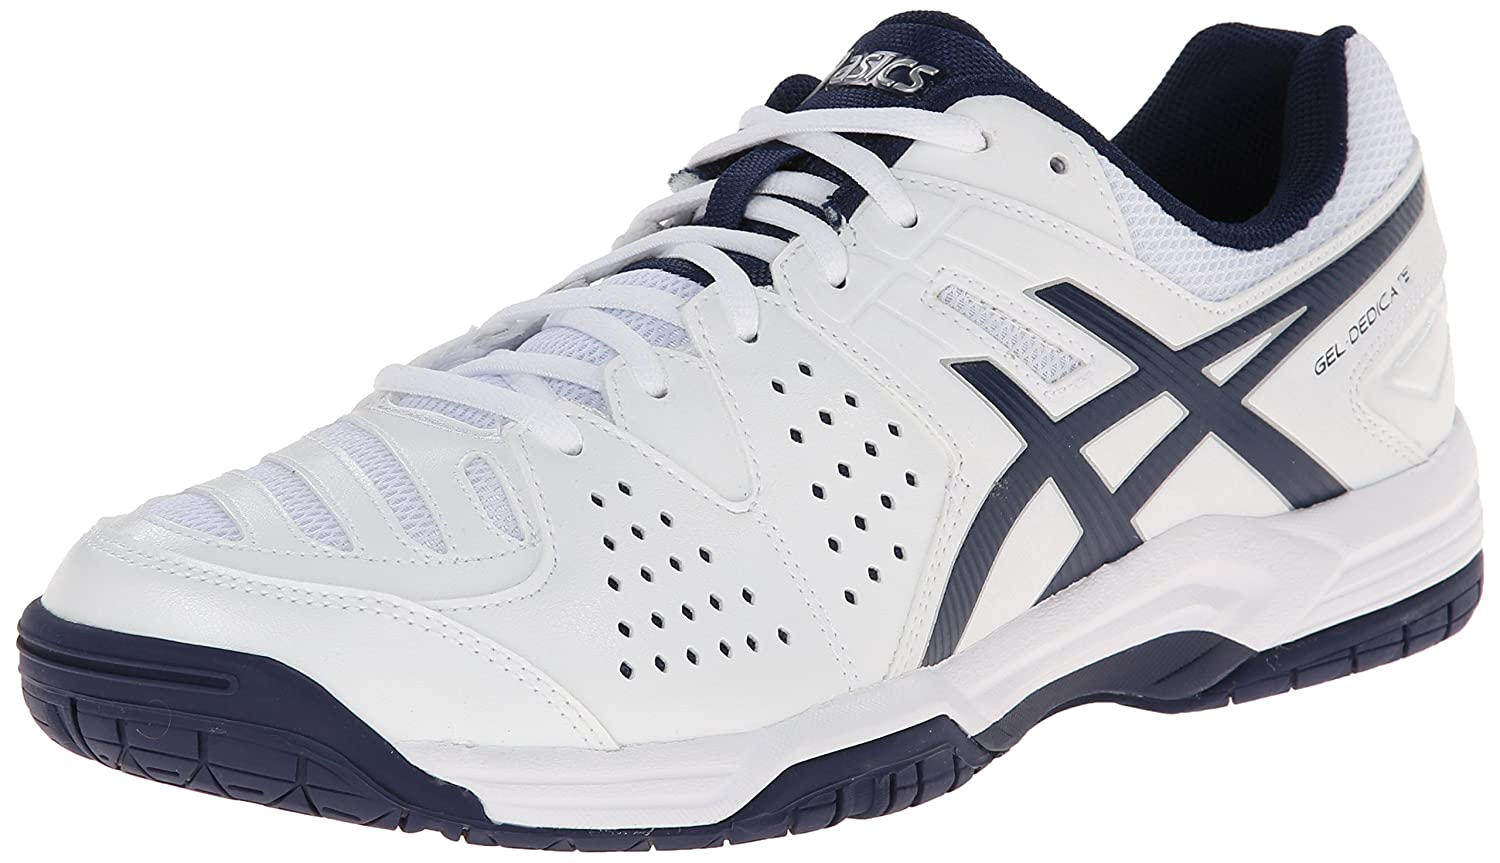 Amazon.com | ASICS Men's Gel-Dedicate 4 Tennis Shoe, White/Navy/Silver, 8.5  M US | Tennis & Racquet Sports